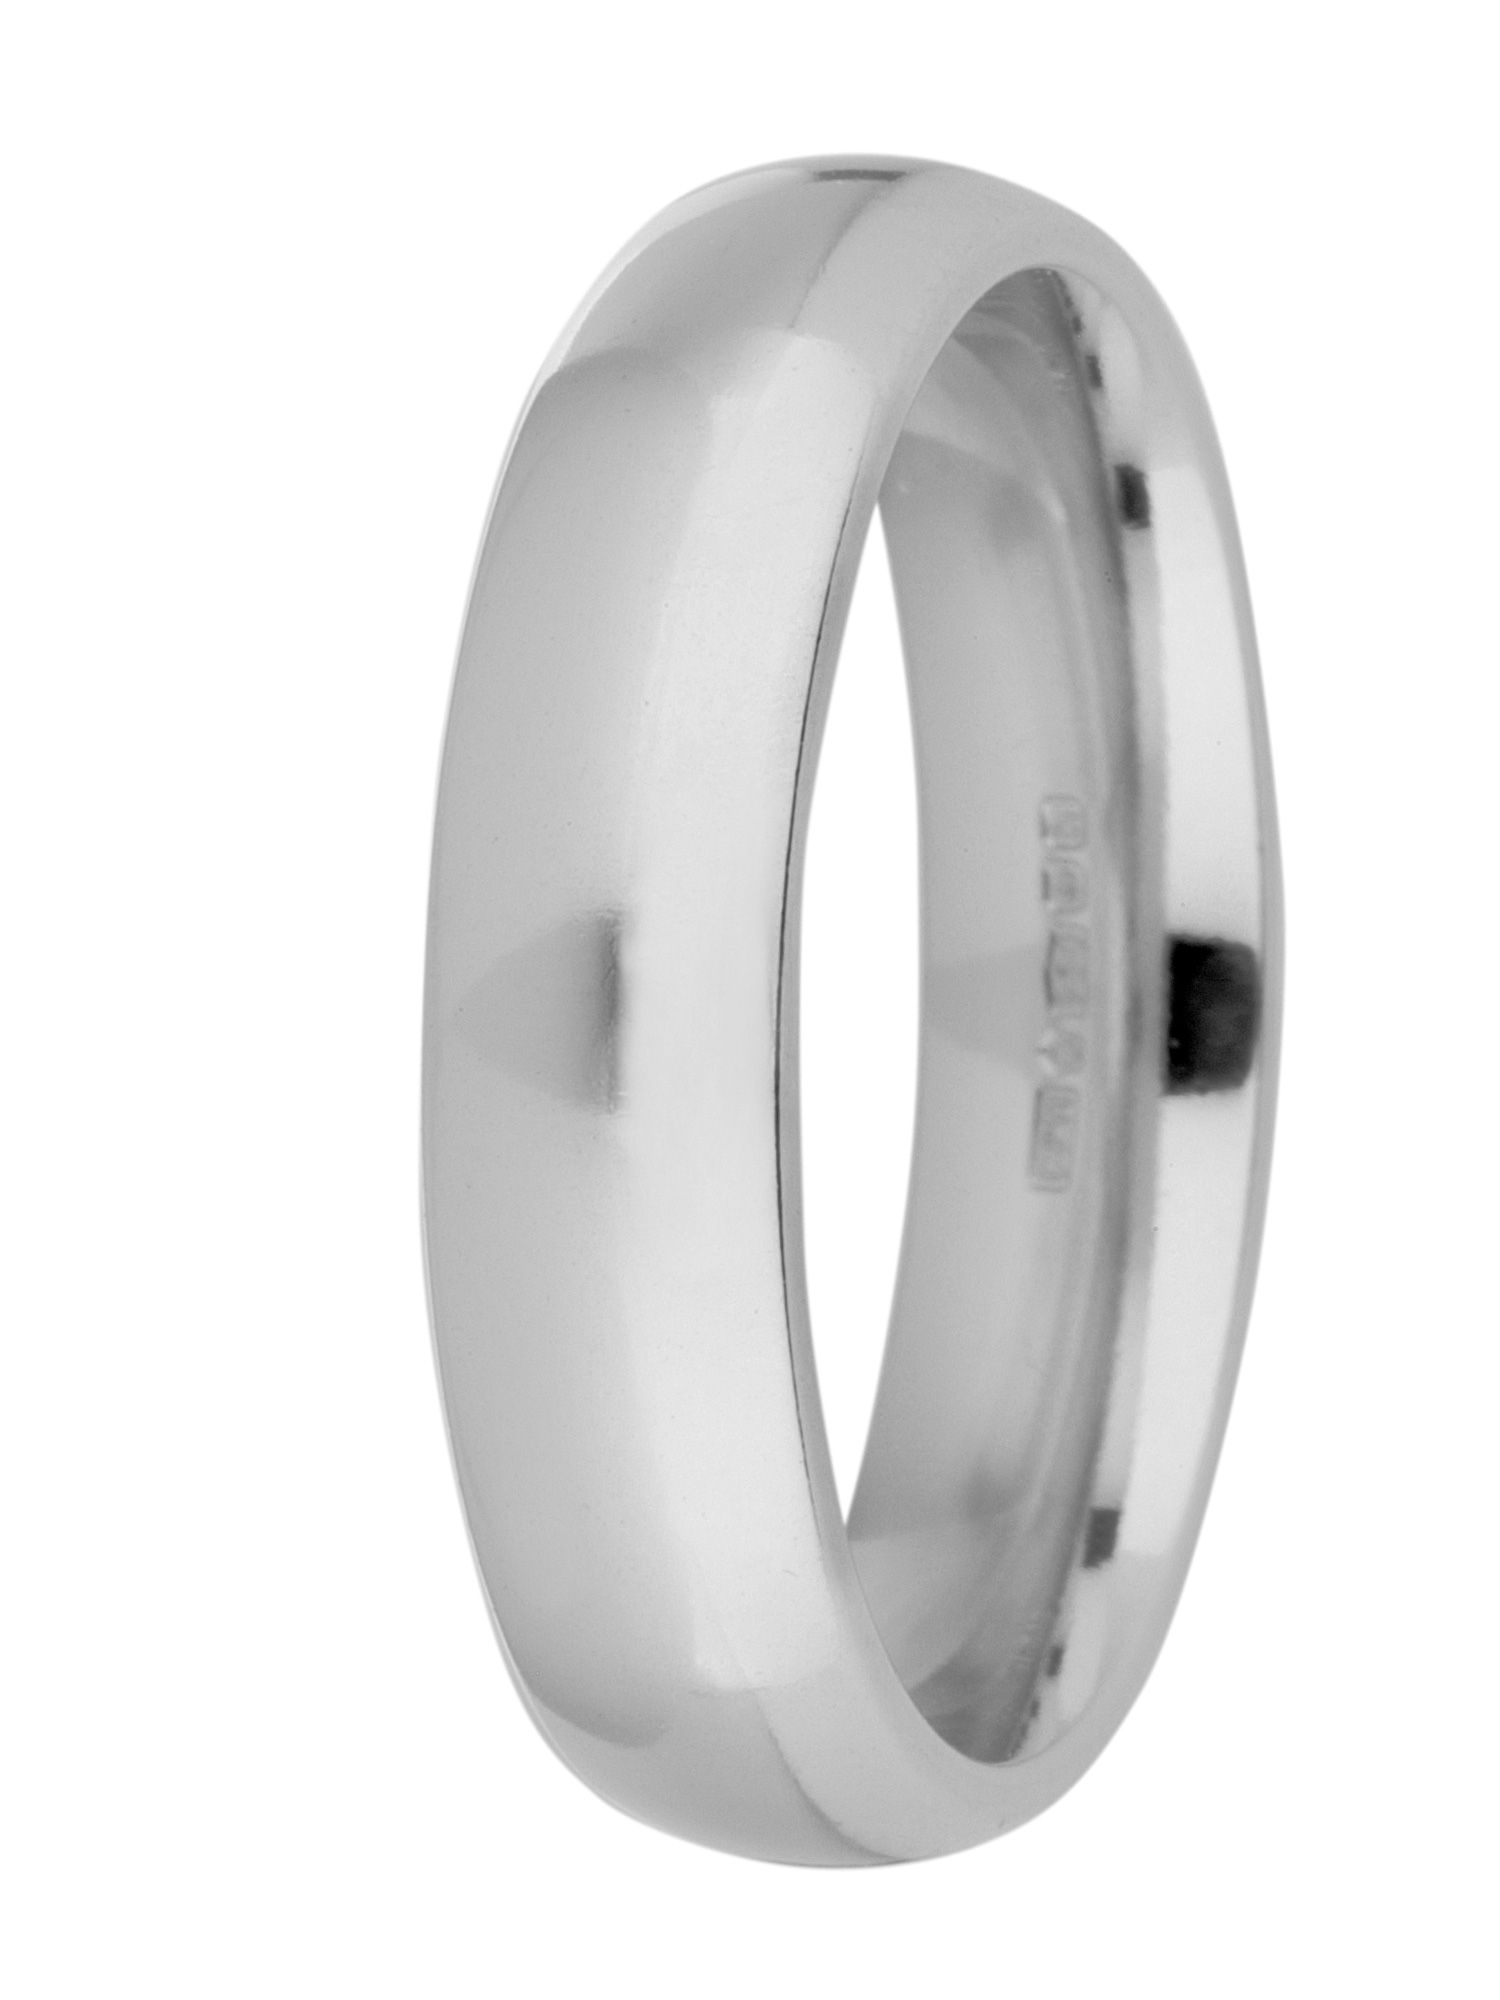 Grooms palladium heavy court 5mm wedding ring - Silver